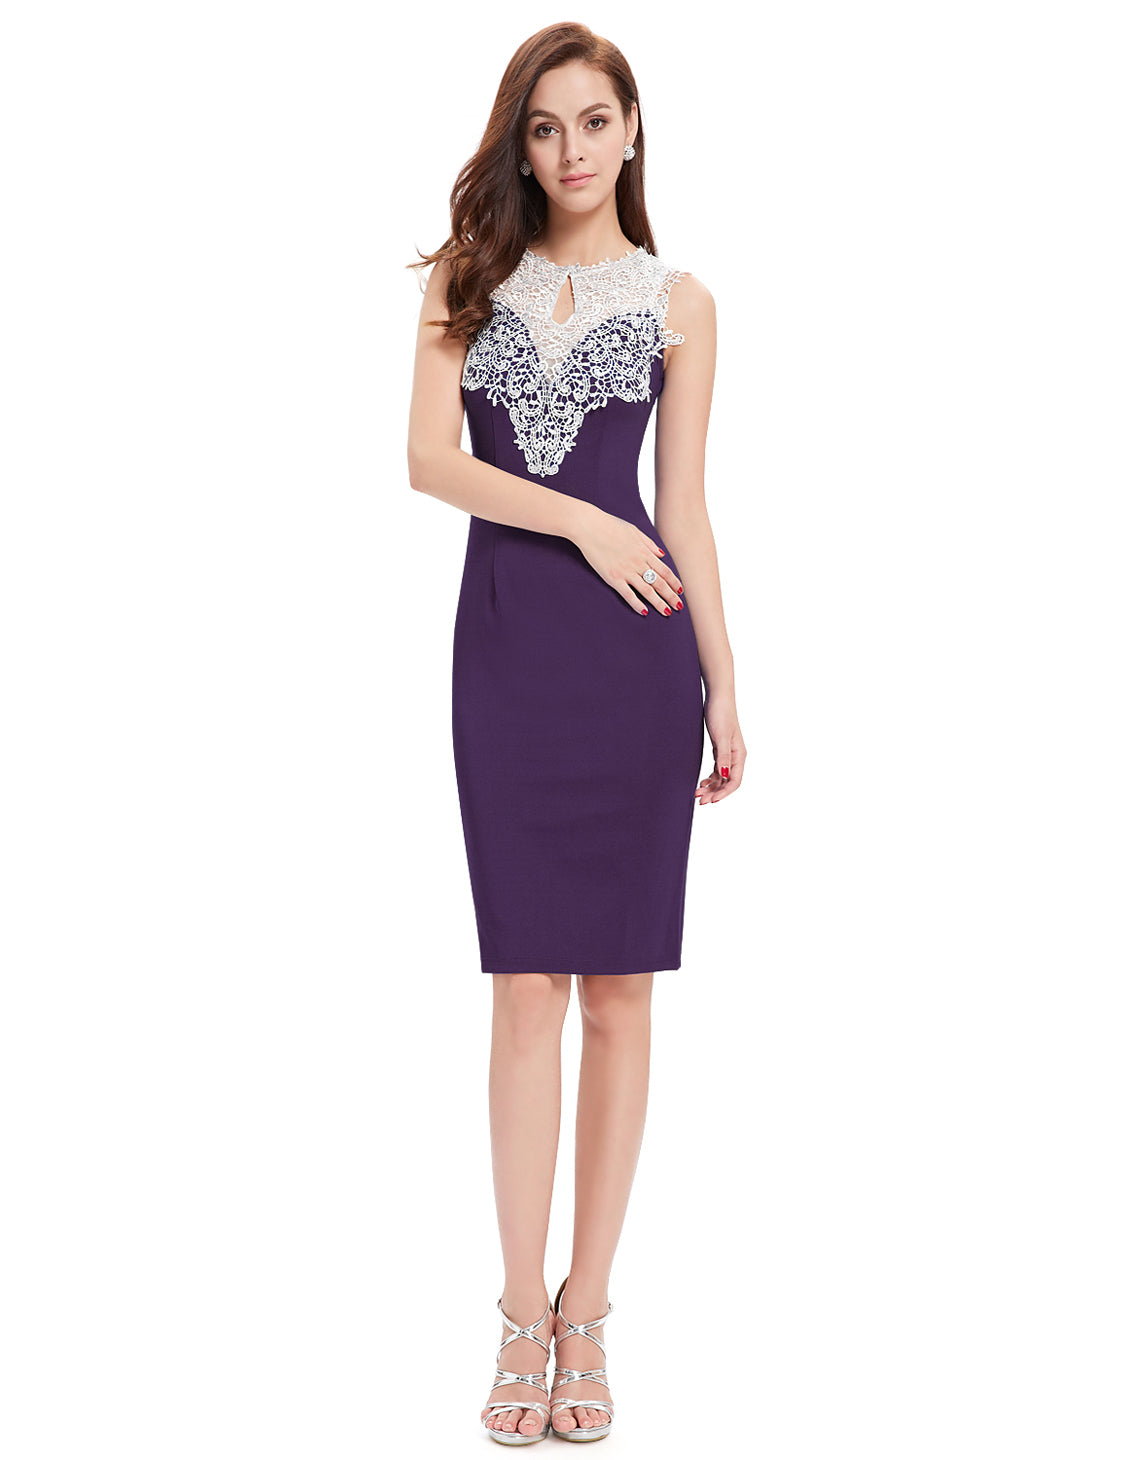 Obeige Purple Sleeveless Lace Short Party Dress